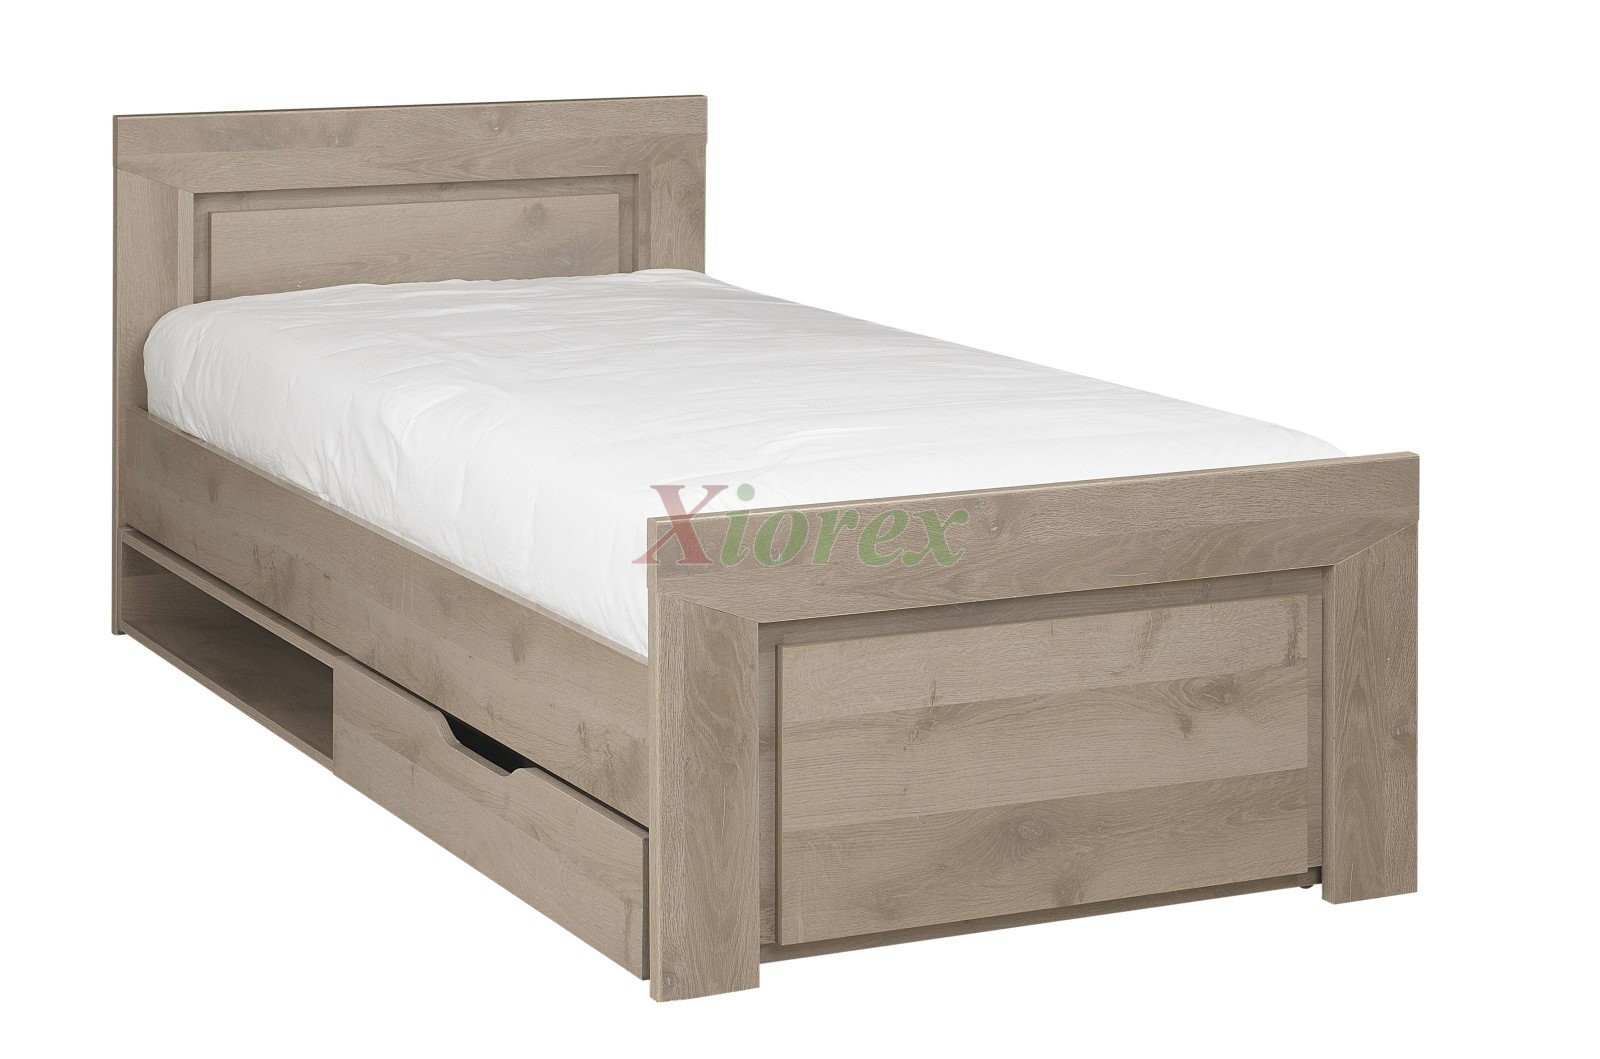 With UK And European Single Bed And Small Double Bed By Gautier